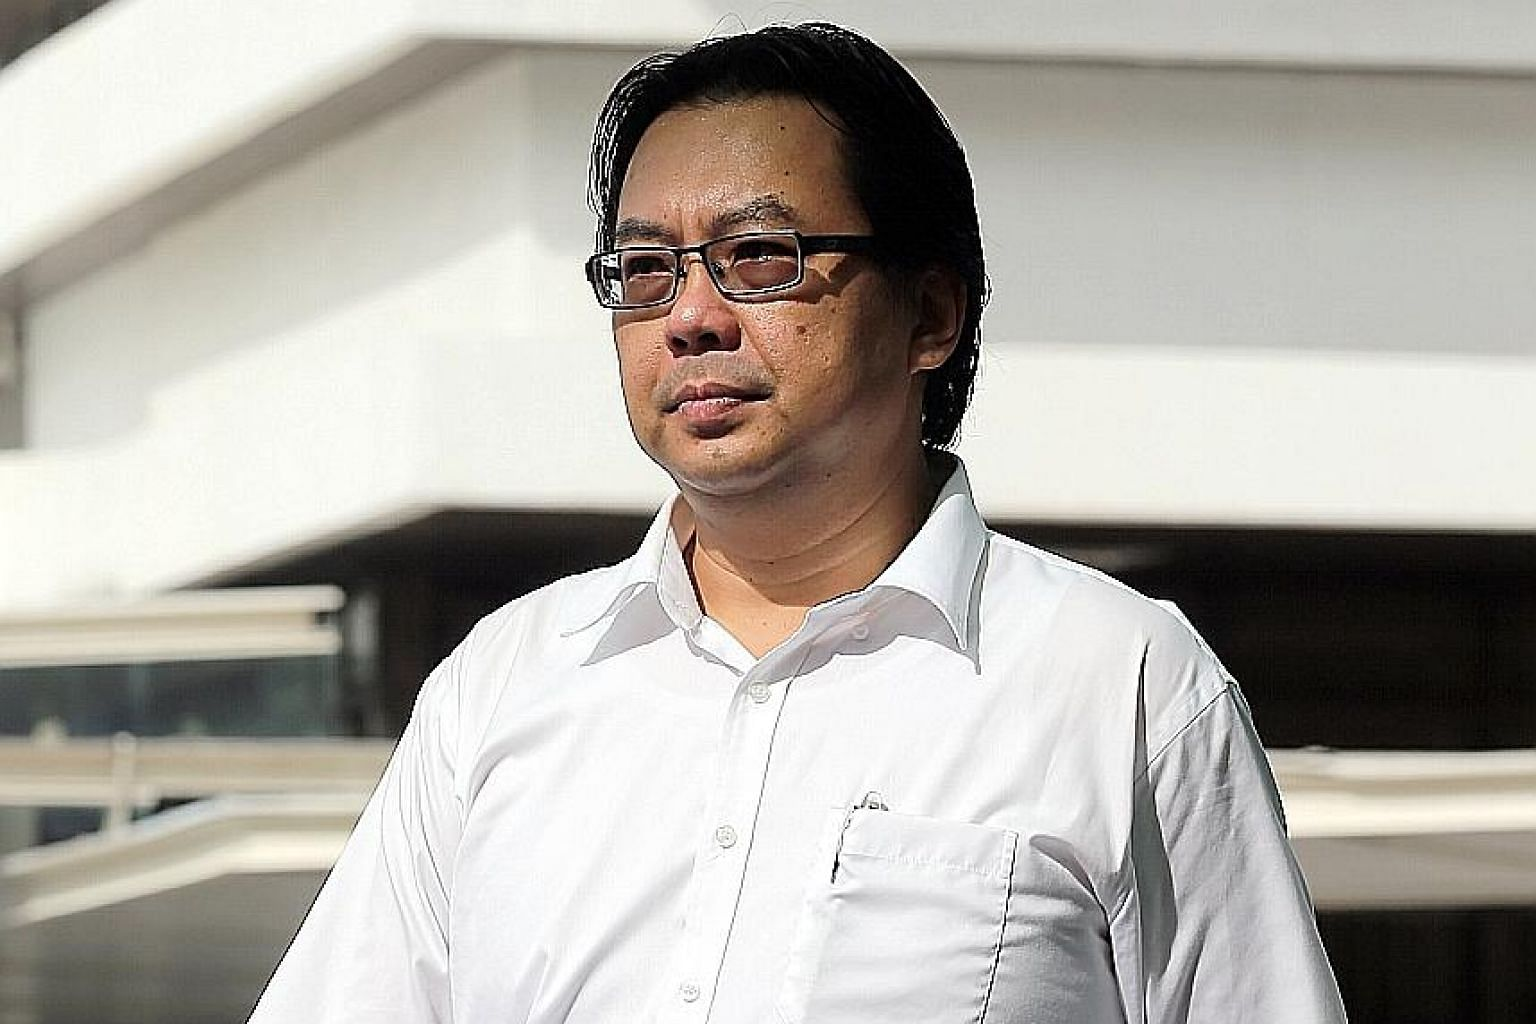 Mr Ismail Atan was cleared in 2015 of the charge of molesting his assistant, after she accepted his offer to compound the matter for $3,000 in compensation and an apology letter. The Court of Three Judges said the letter was an admission by Mr Ismail